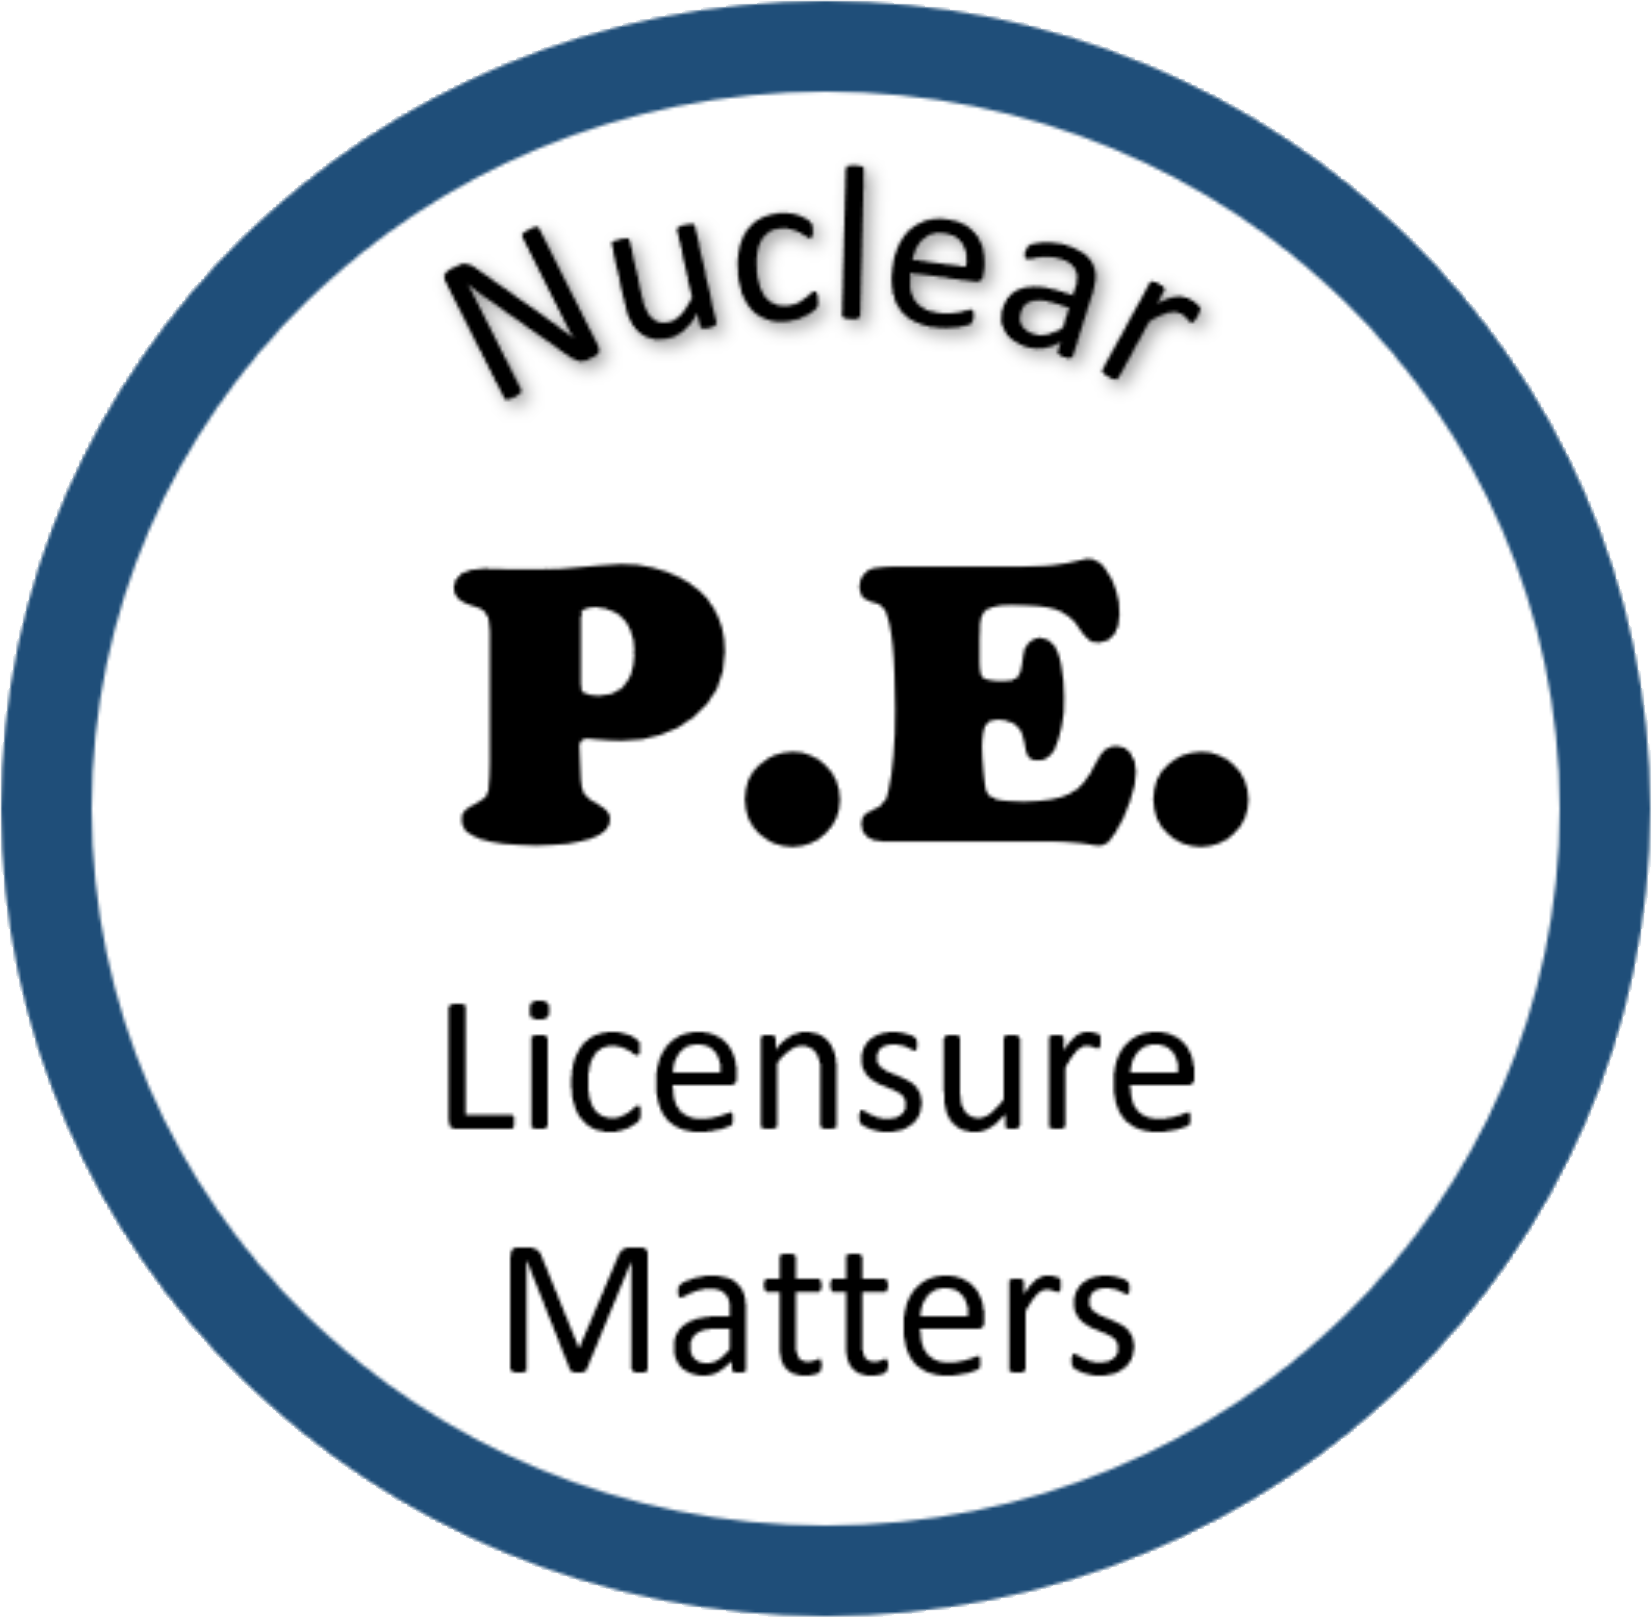 Professional Engineering Licensure for Nuclear Engineers